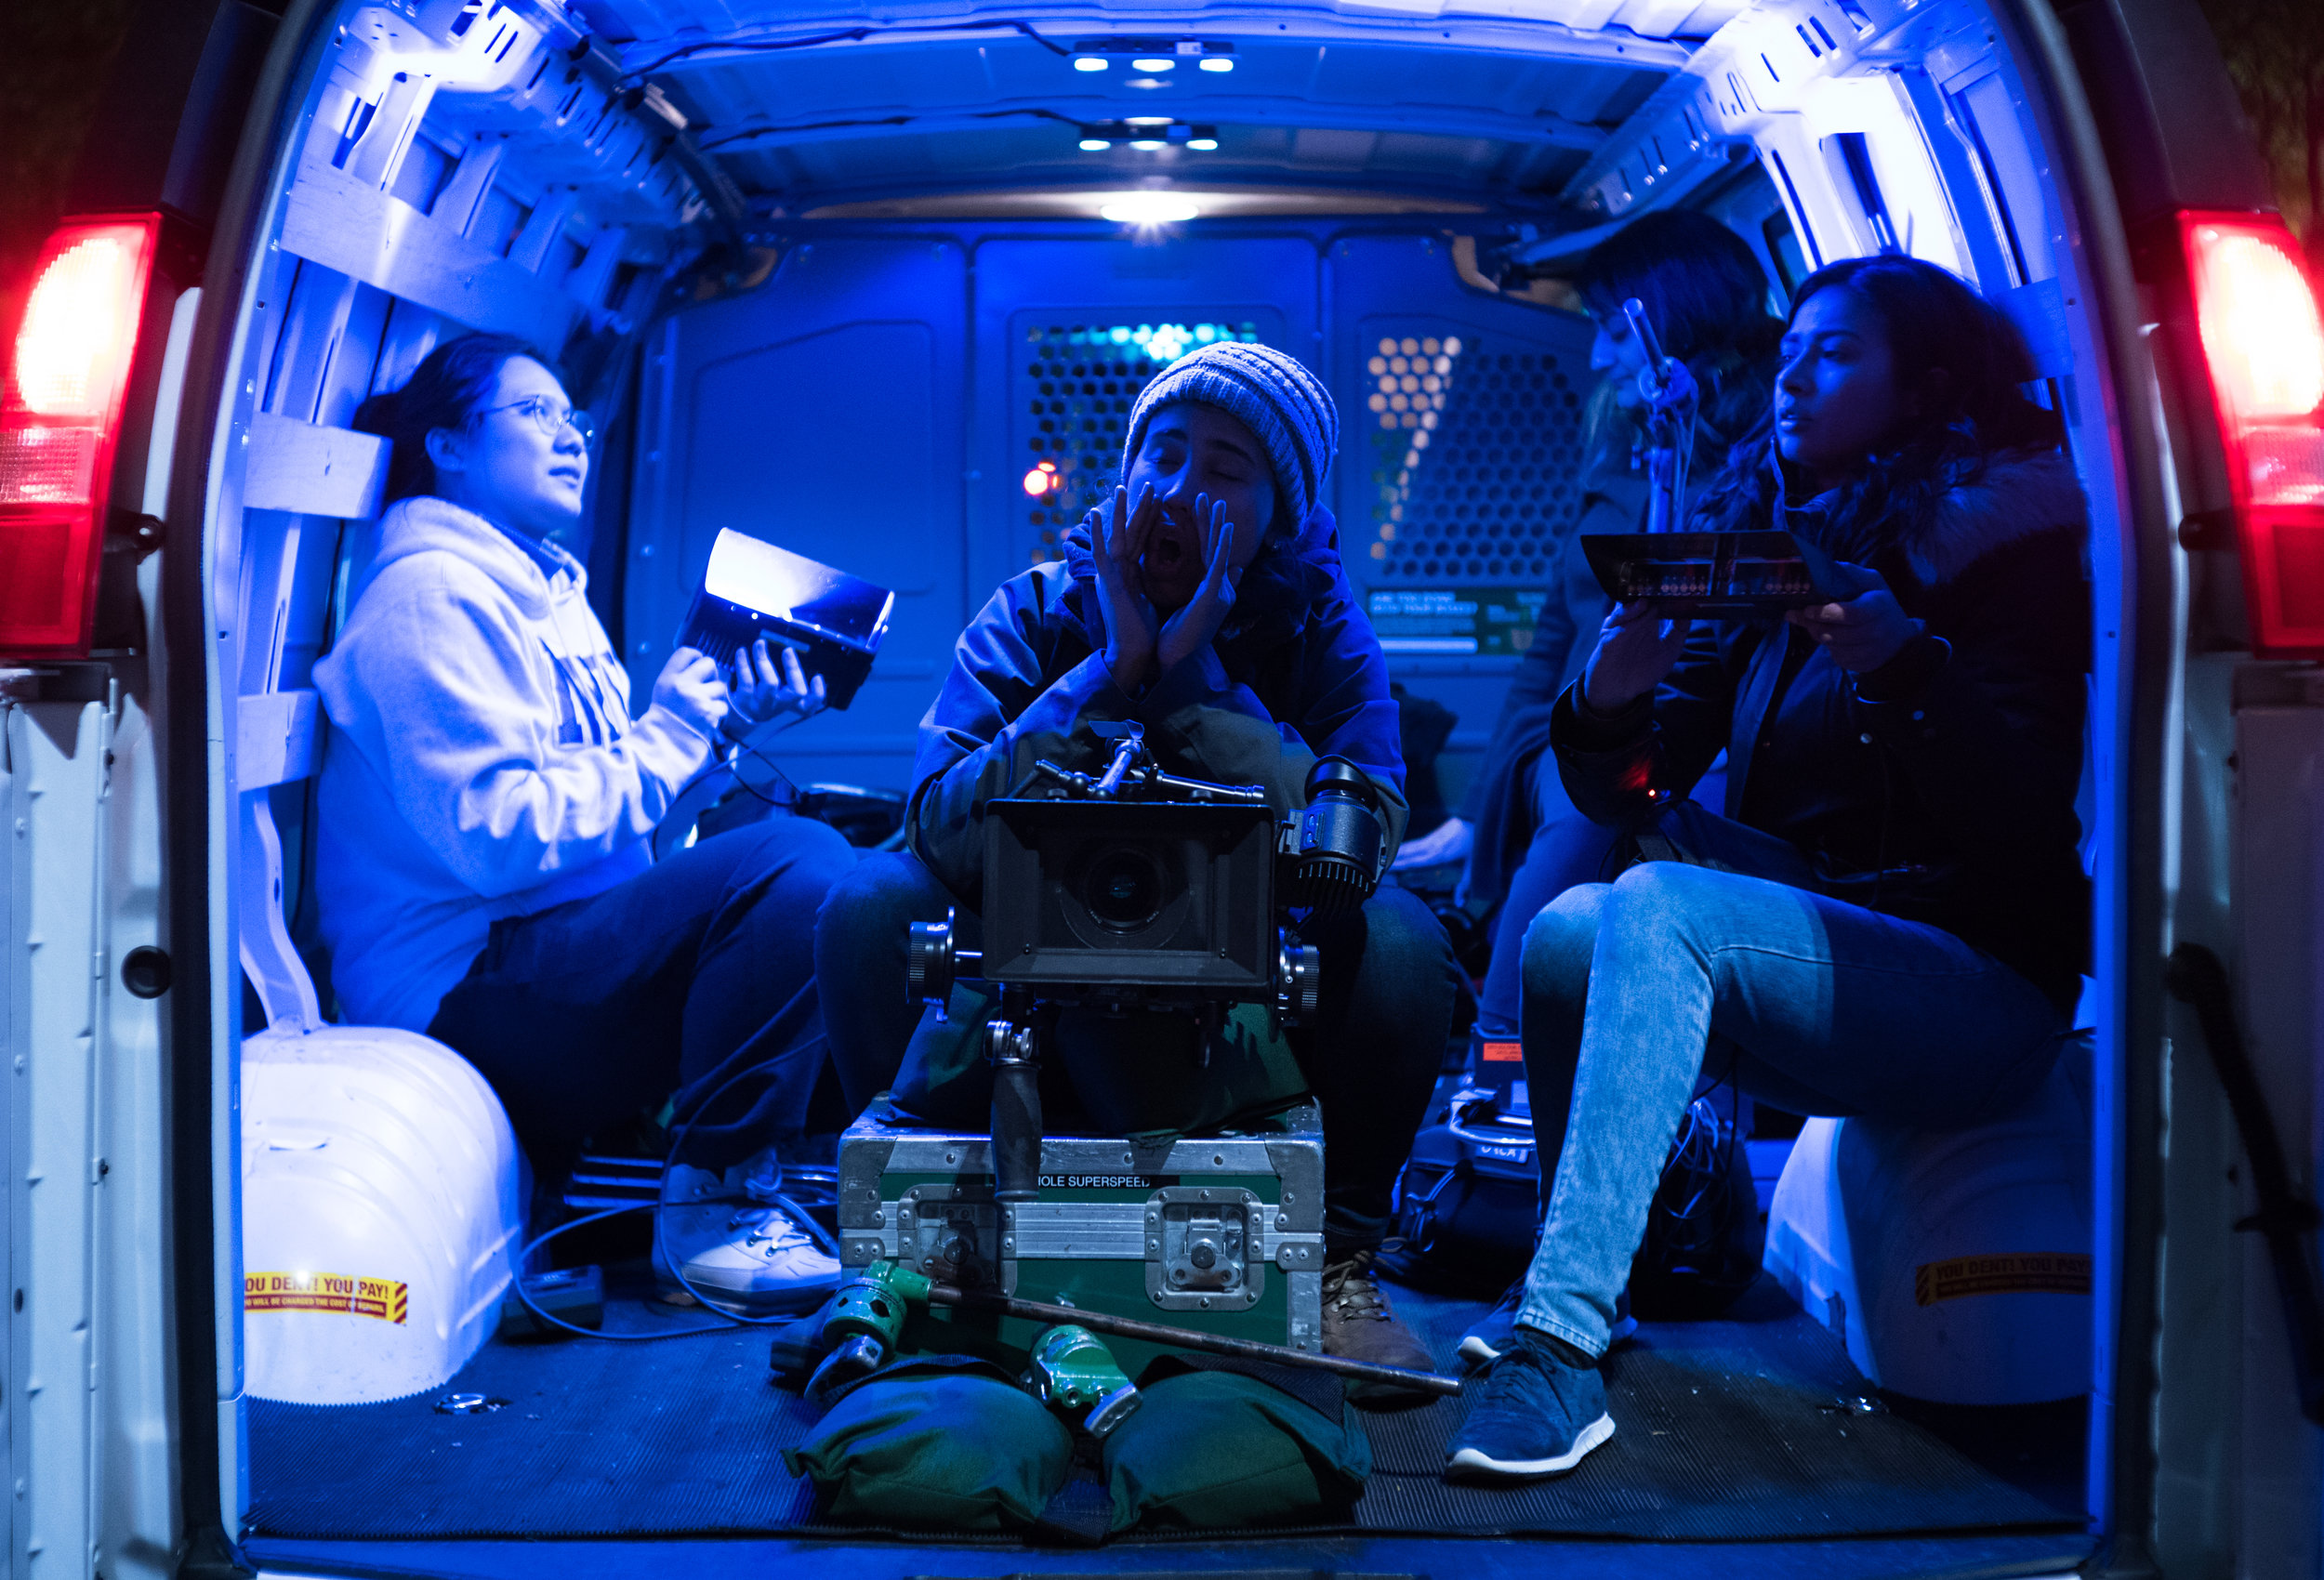 """From L to R: cinematographer Lore Durán, 1st AC Tang Yi, sound mixer Swetha Regunathan, and writer/director Ria Tobaccowala on the set of """"Freedom Shadow""""  Sony a9"""